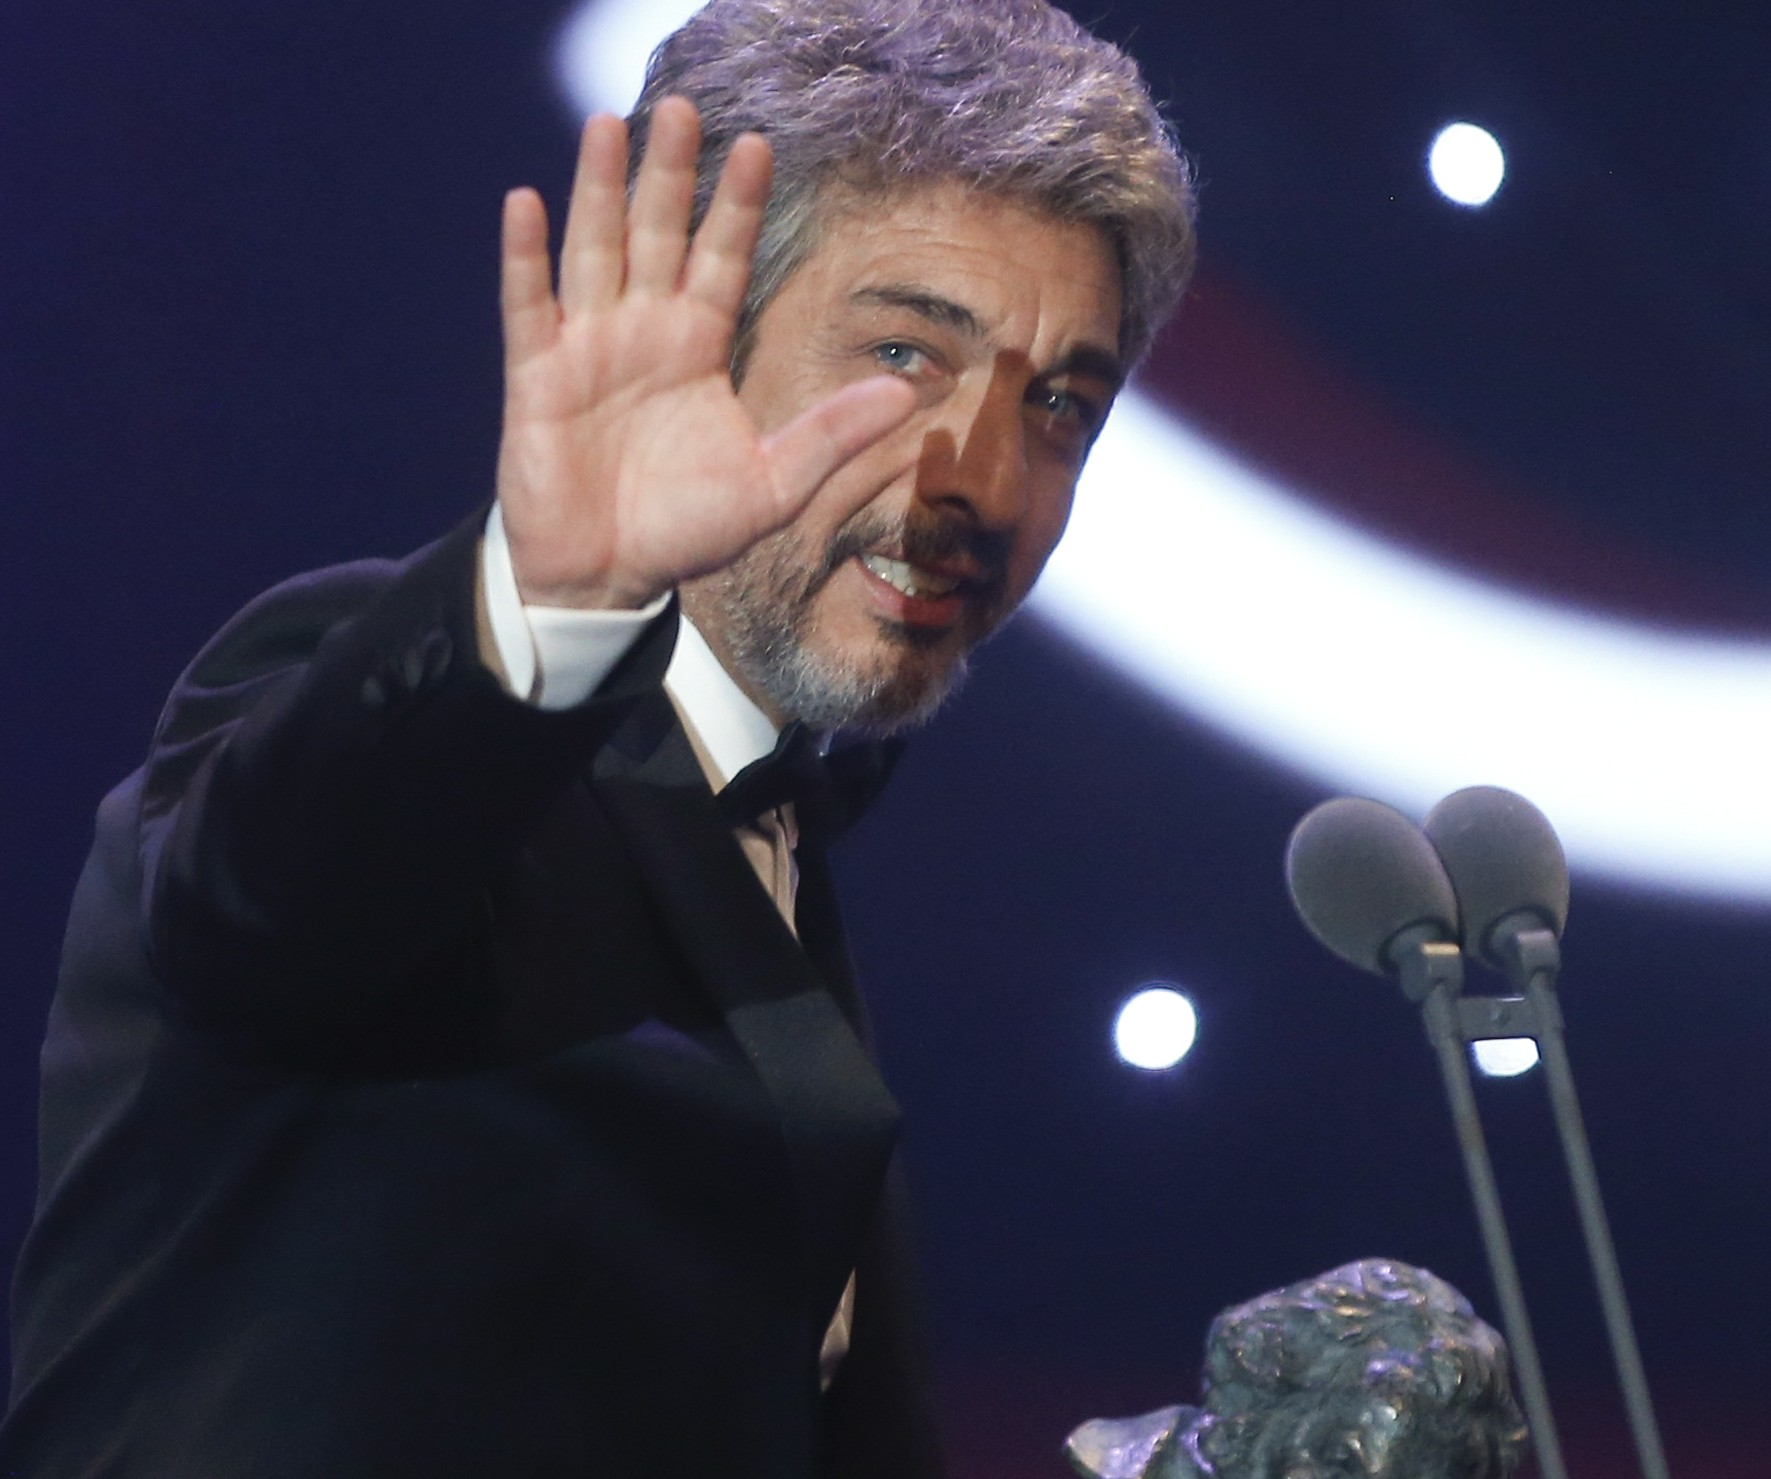 Actor Ricardo Darin reacts as he holds his Best Leading Actor trophy during the Spanish Film Academy's Goya Awards ceremony in Madrid, Spain, February 7, 2016. REUTERS/Susana Vera - RTX25SDI